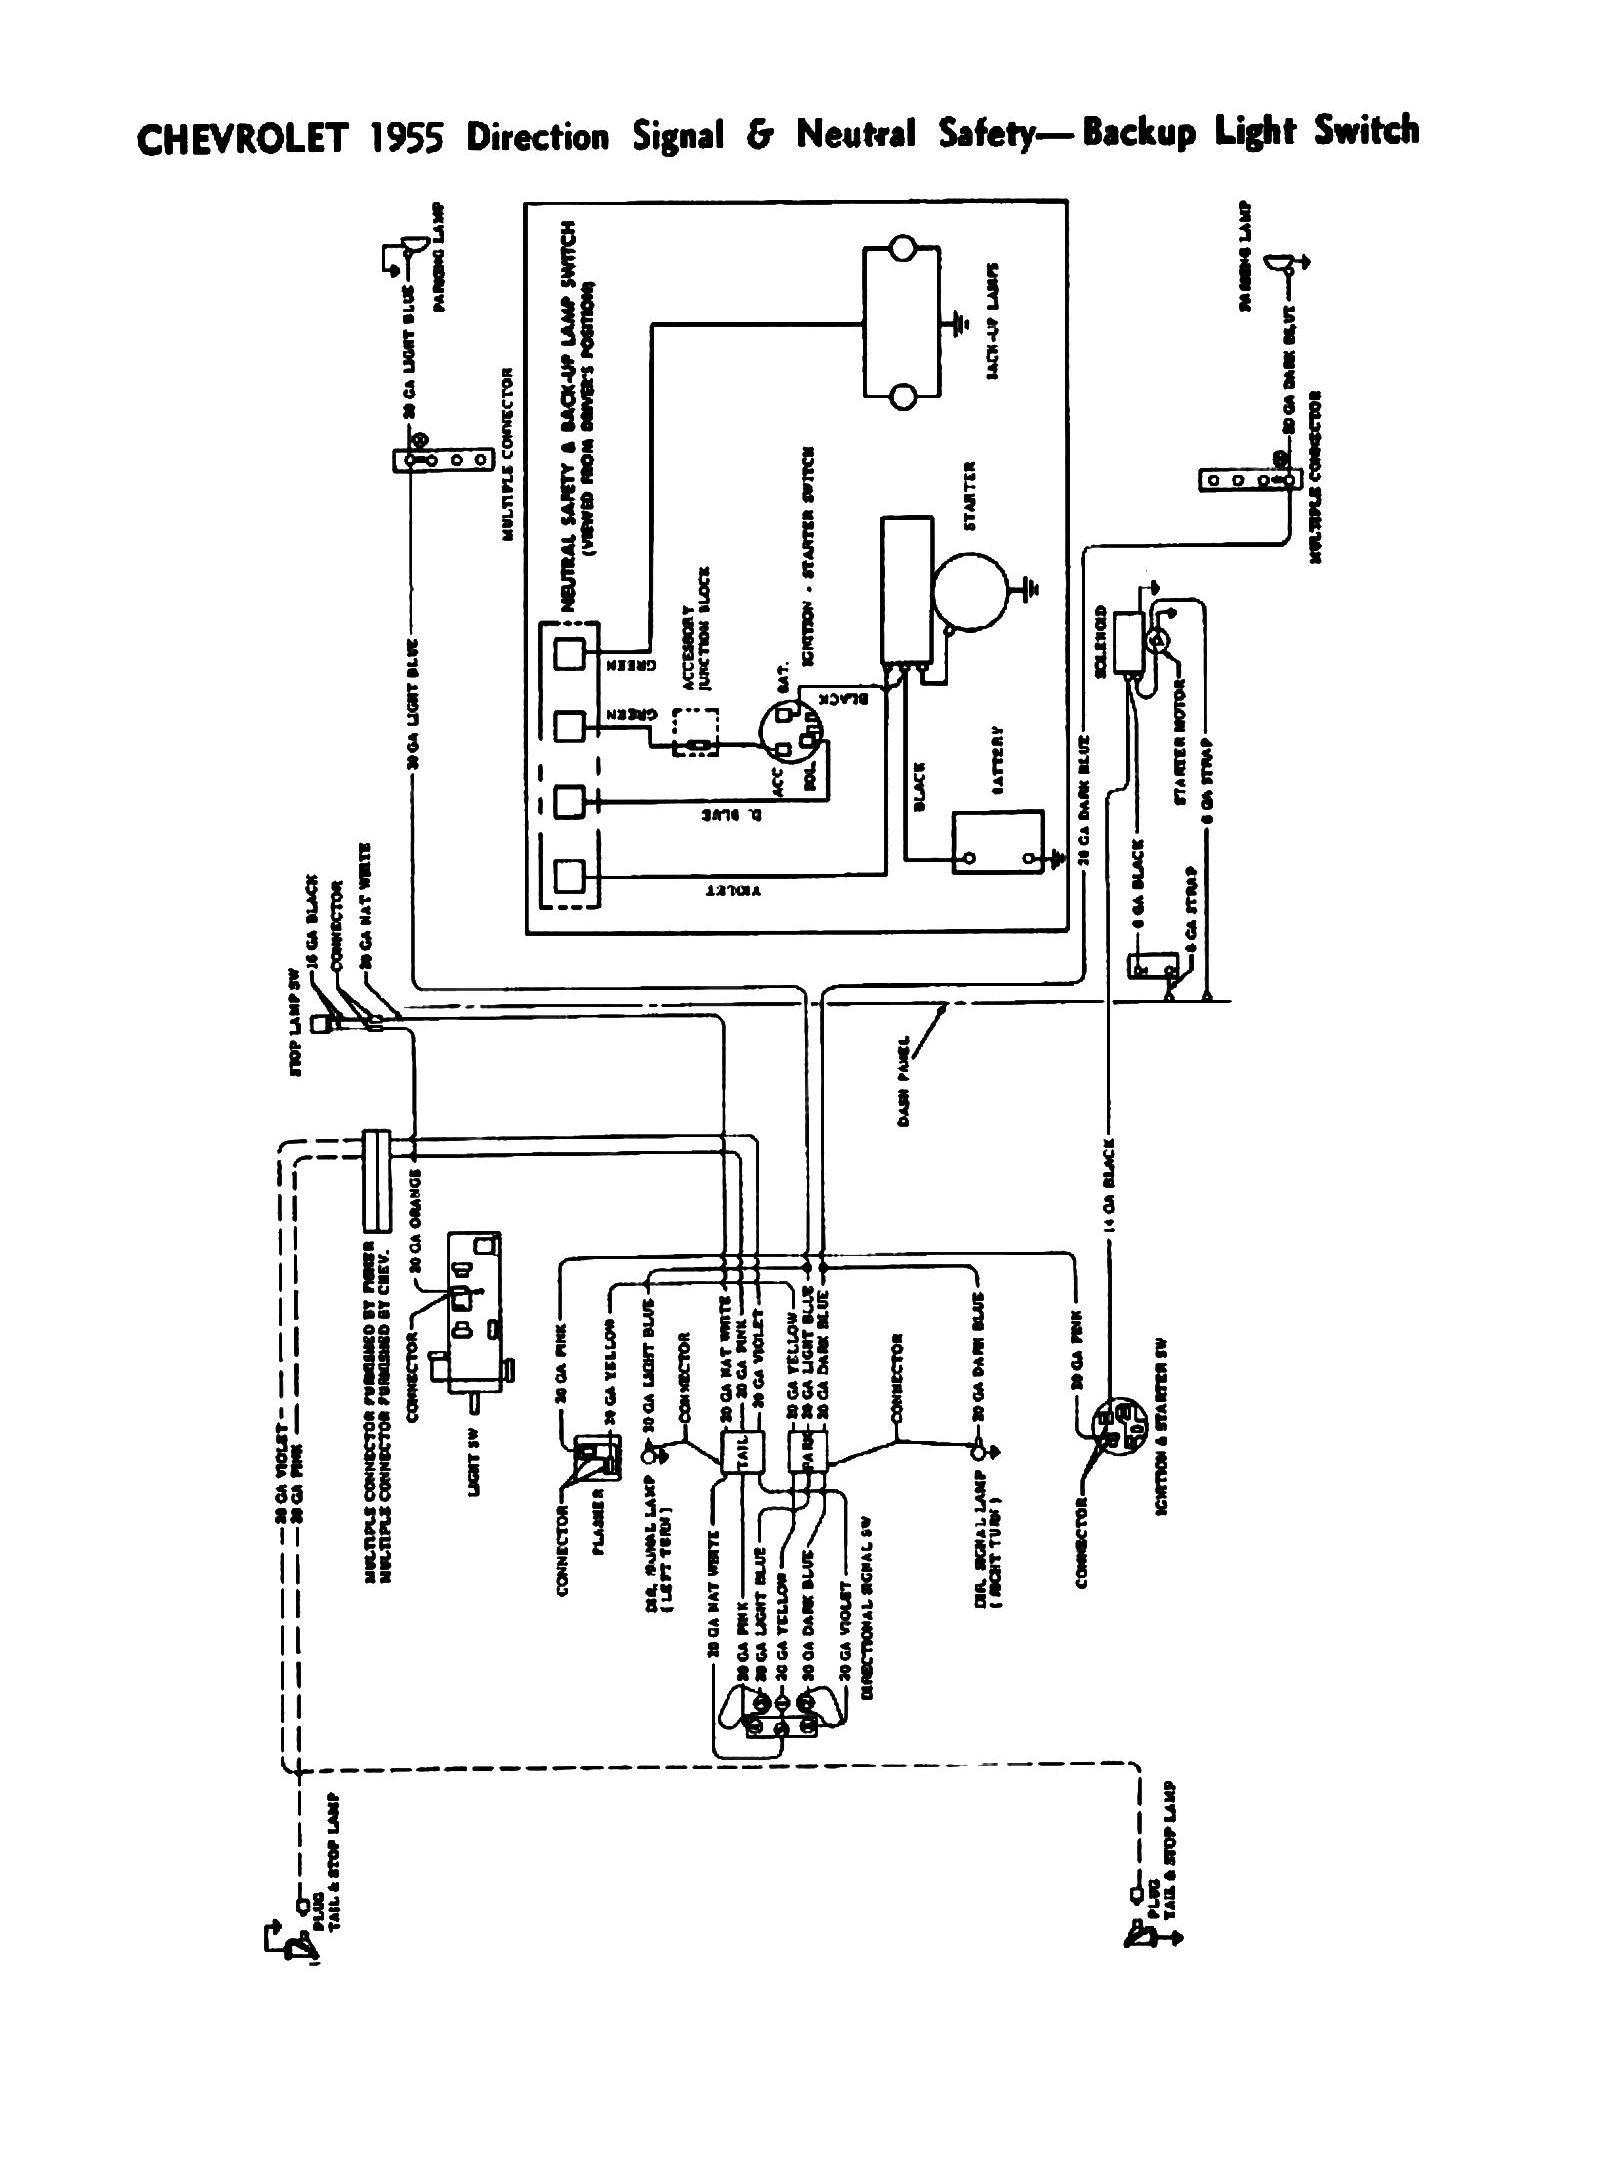 1957 chevrolet truck wiring diagram wire data schema u2022 rh lemise co